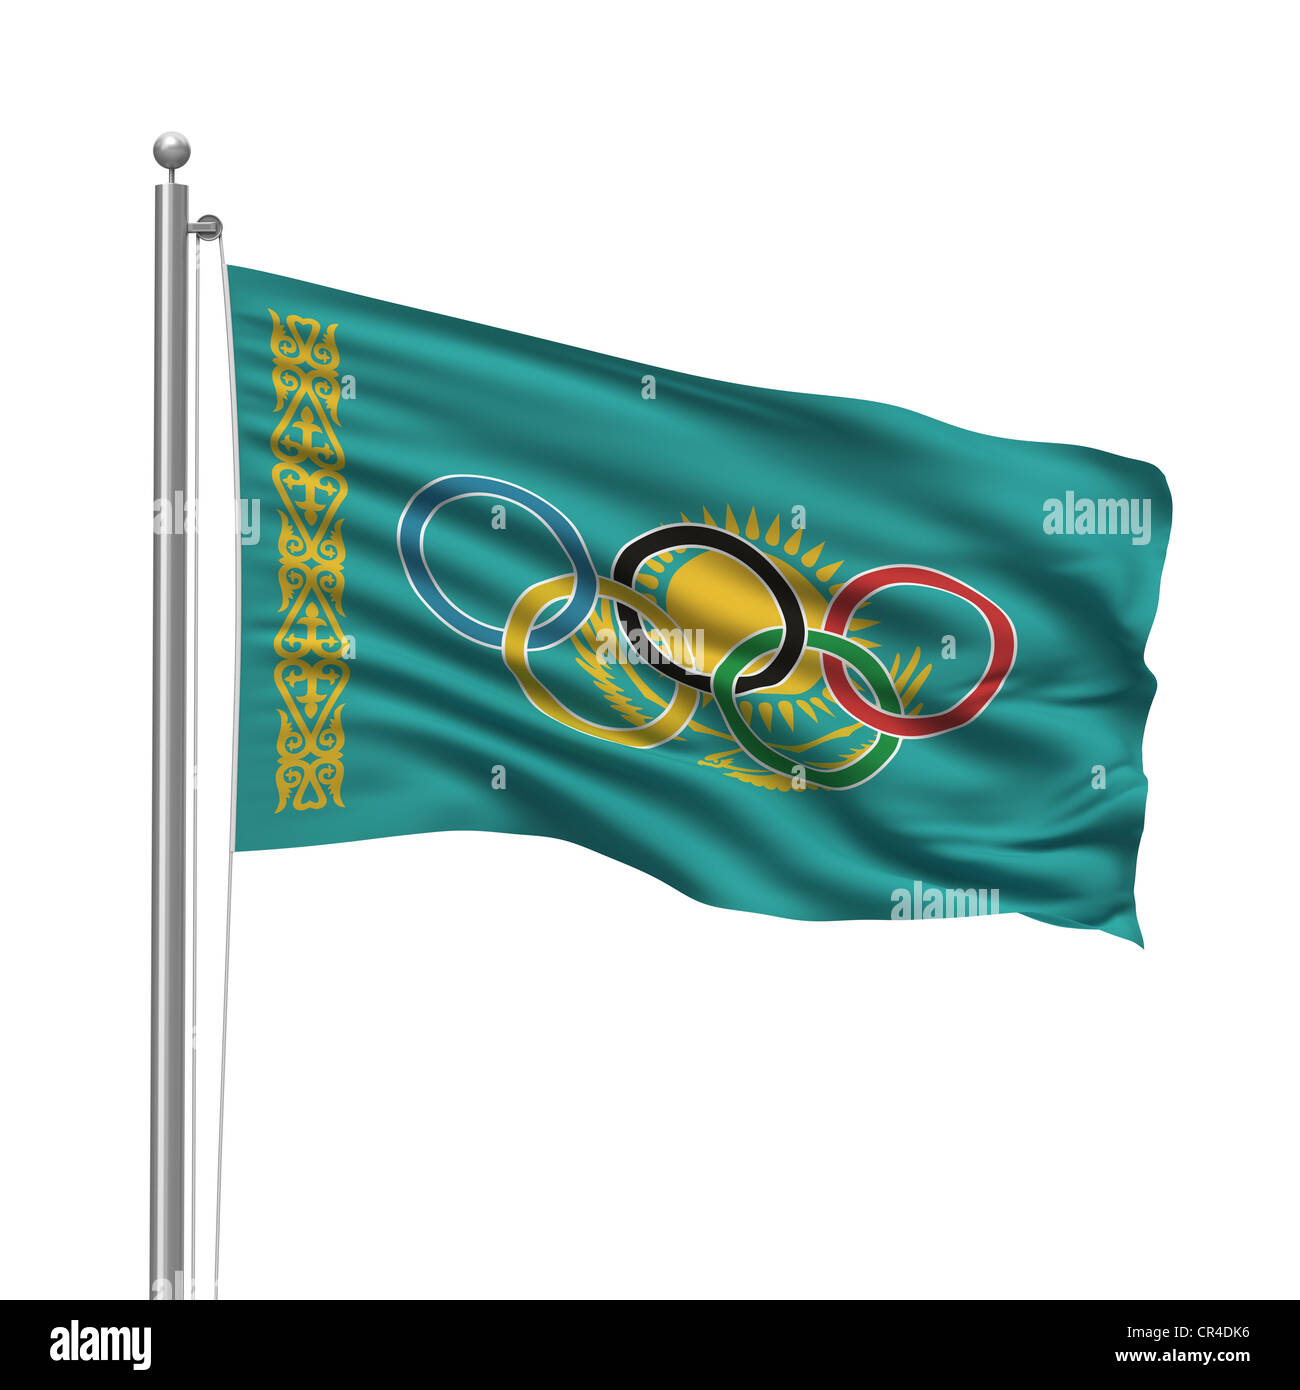 Flag of Kazakhstan with Olympic rings - Stock Image